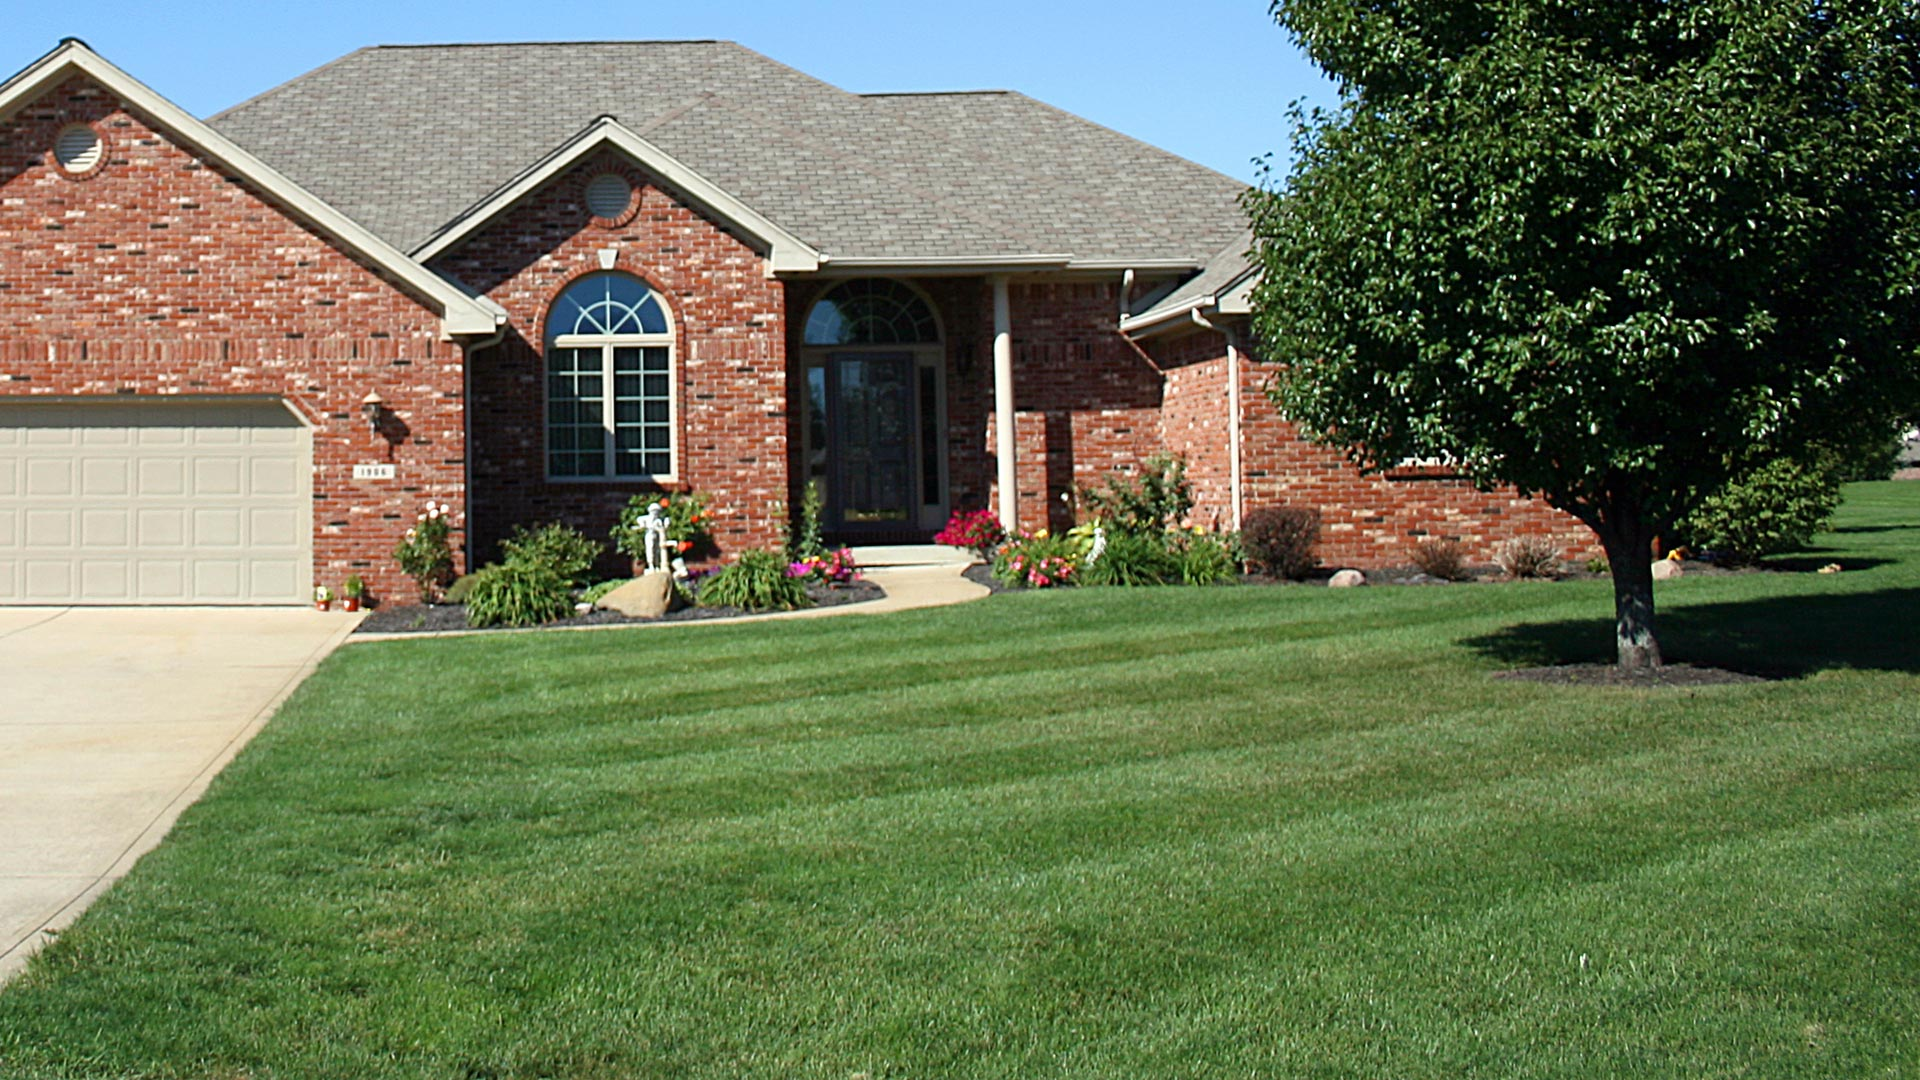 A professionally maintained lawn and landscape at a home in Des Moines, IA.